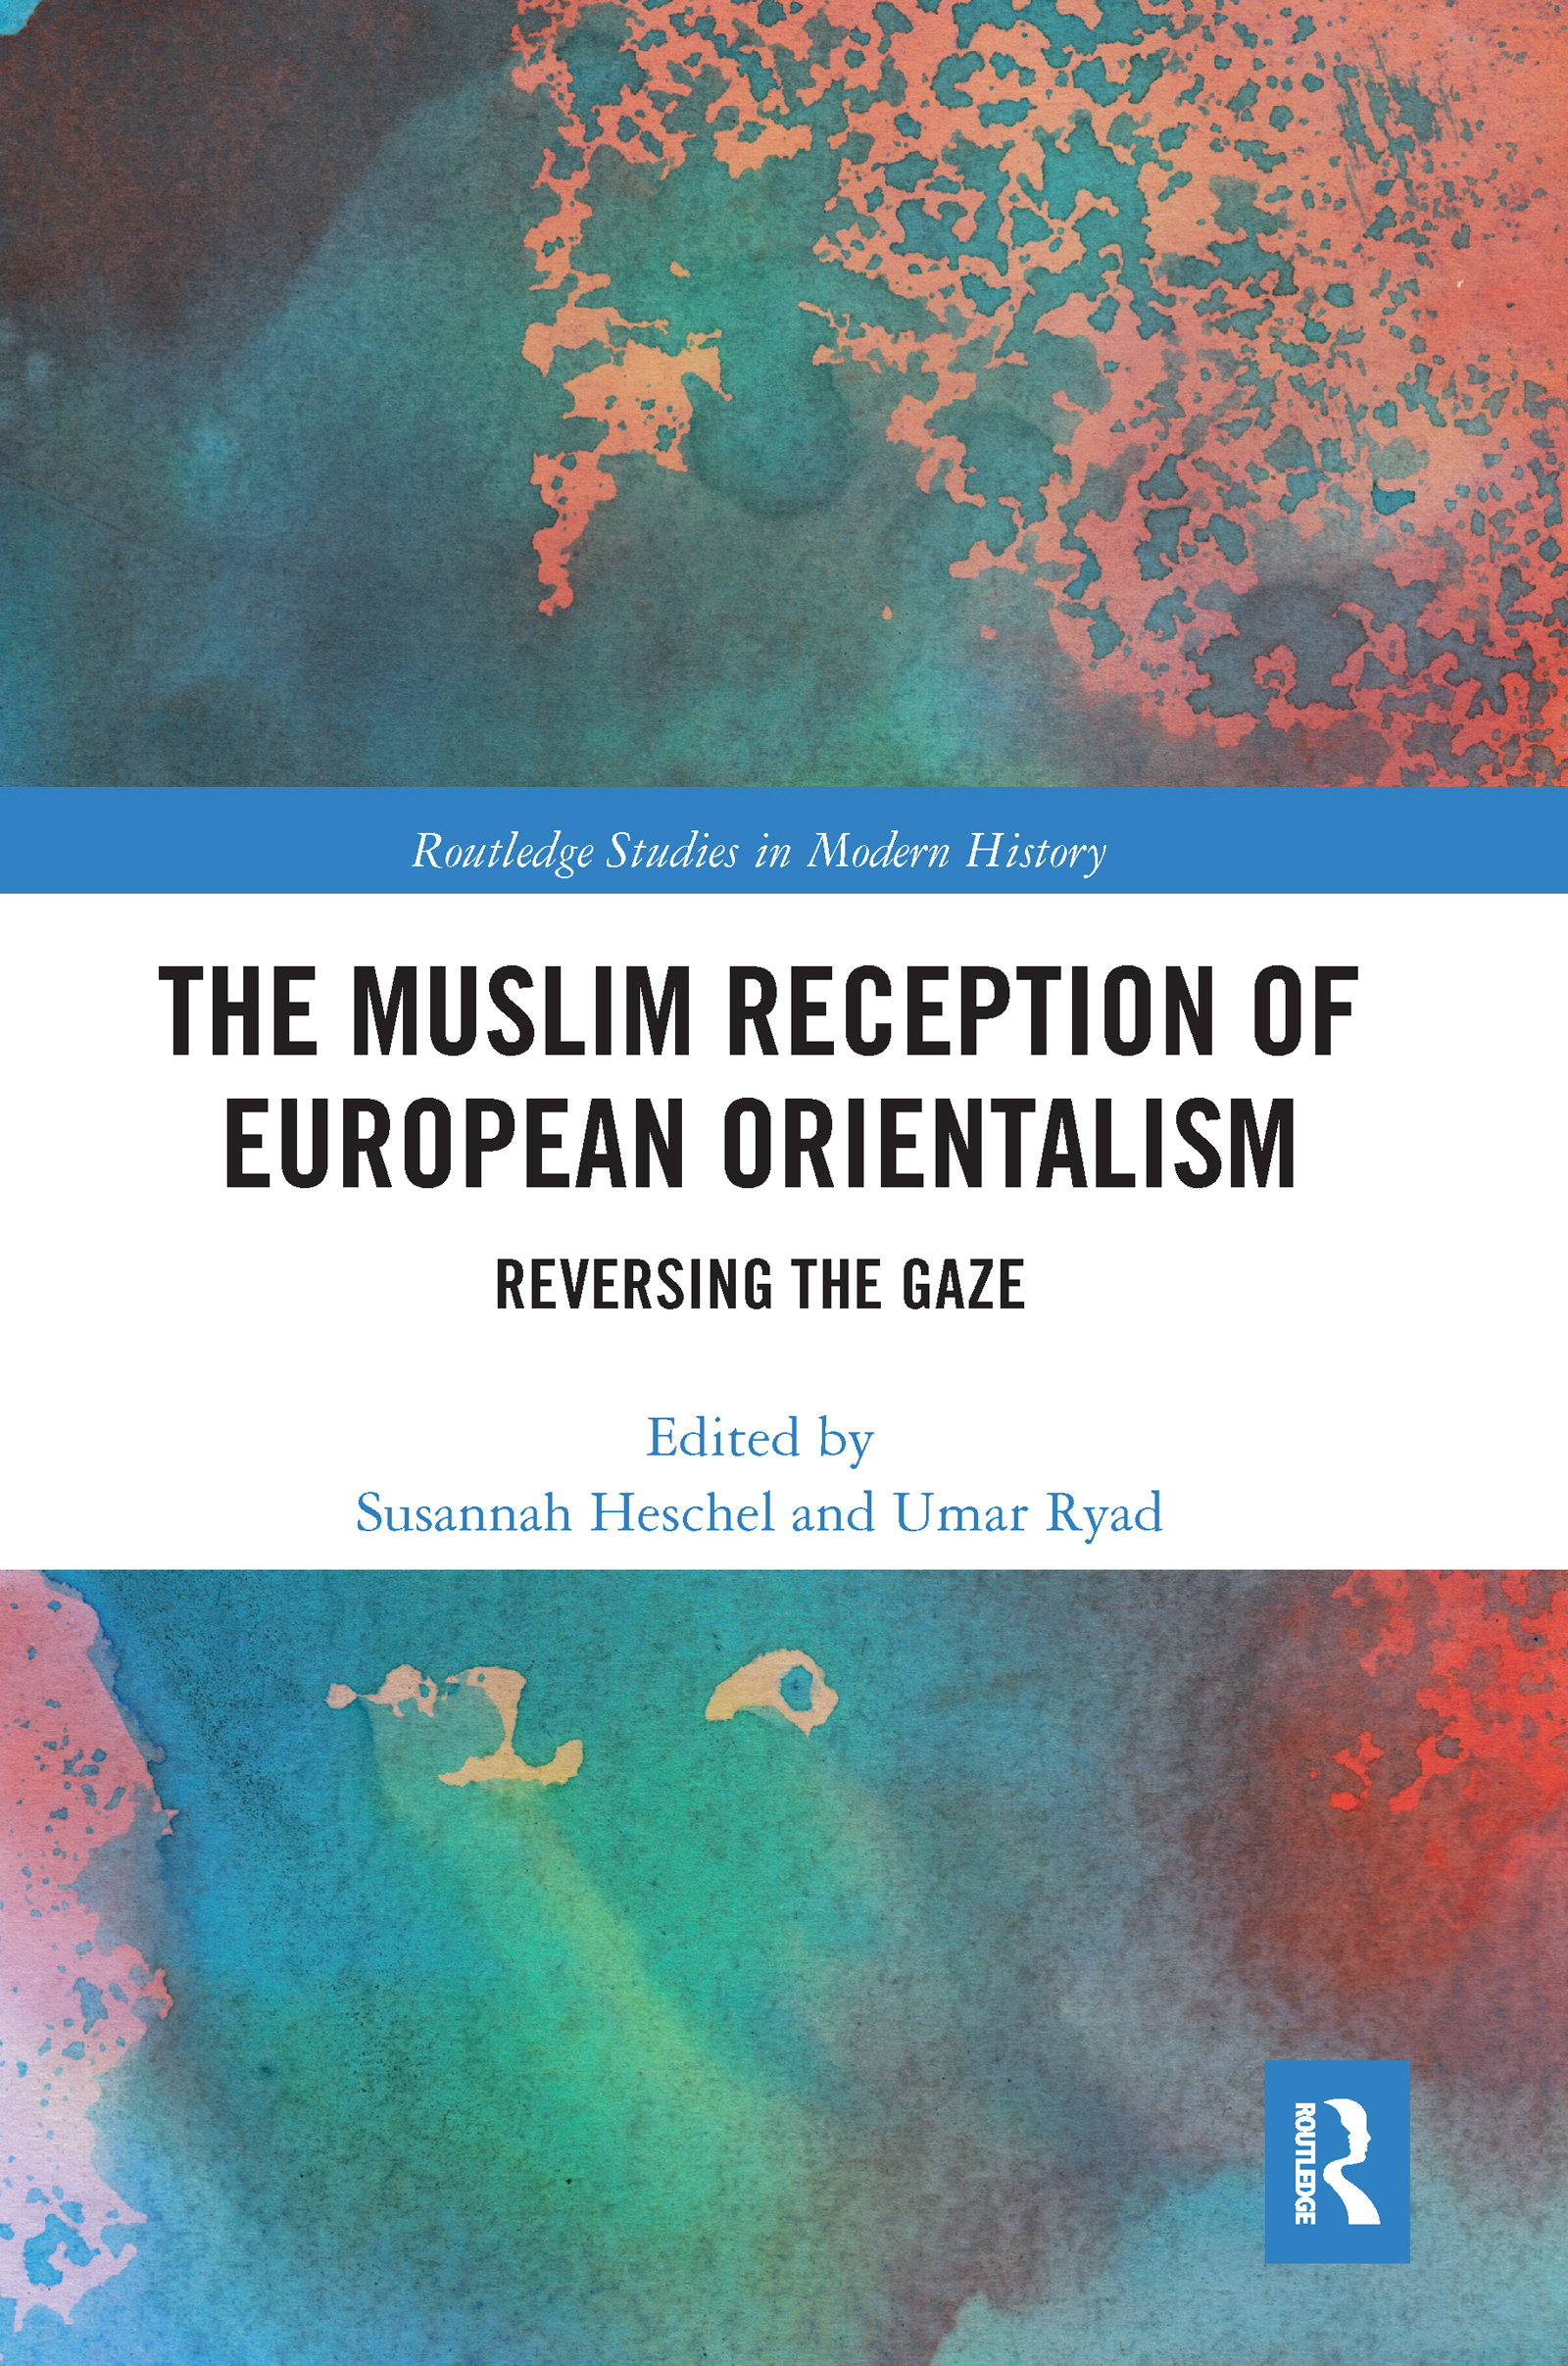 The Muslim Reception of European Orientalism